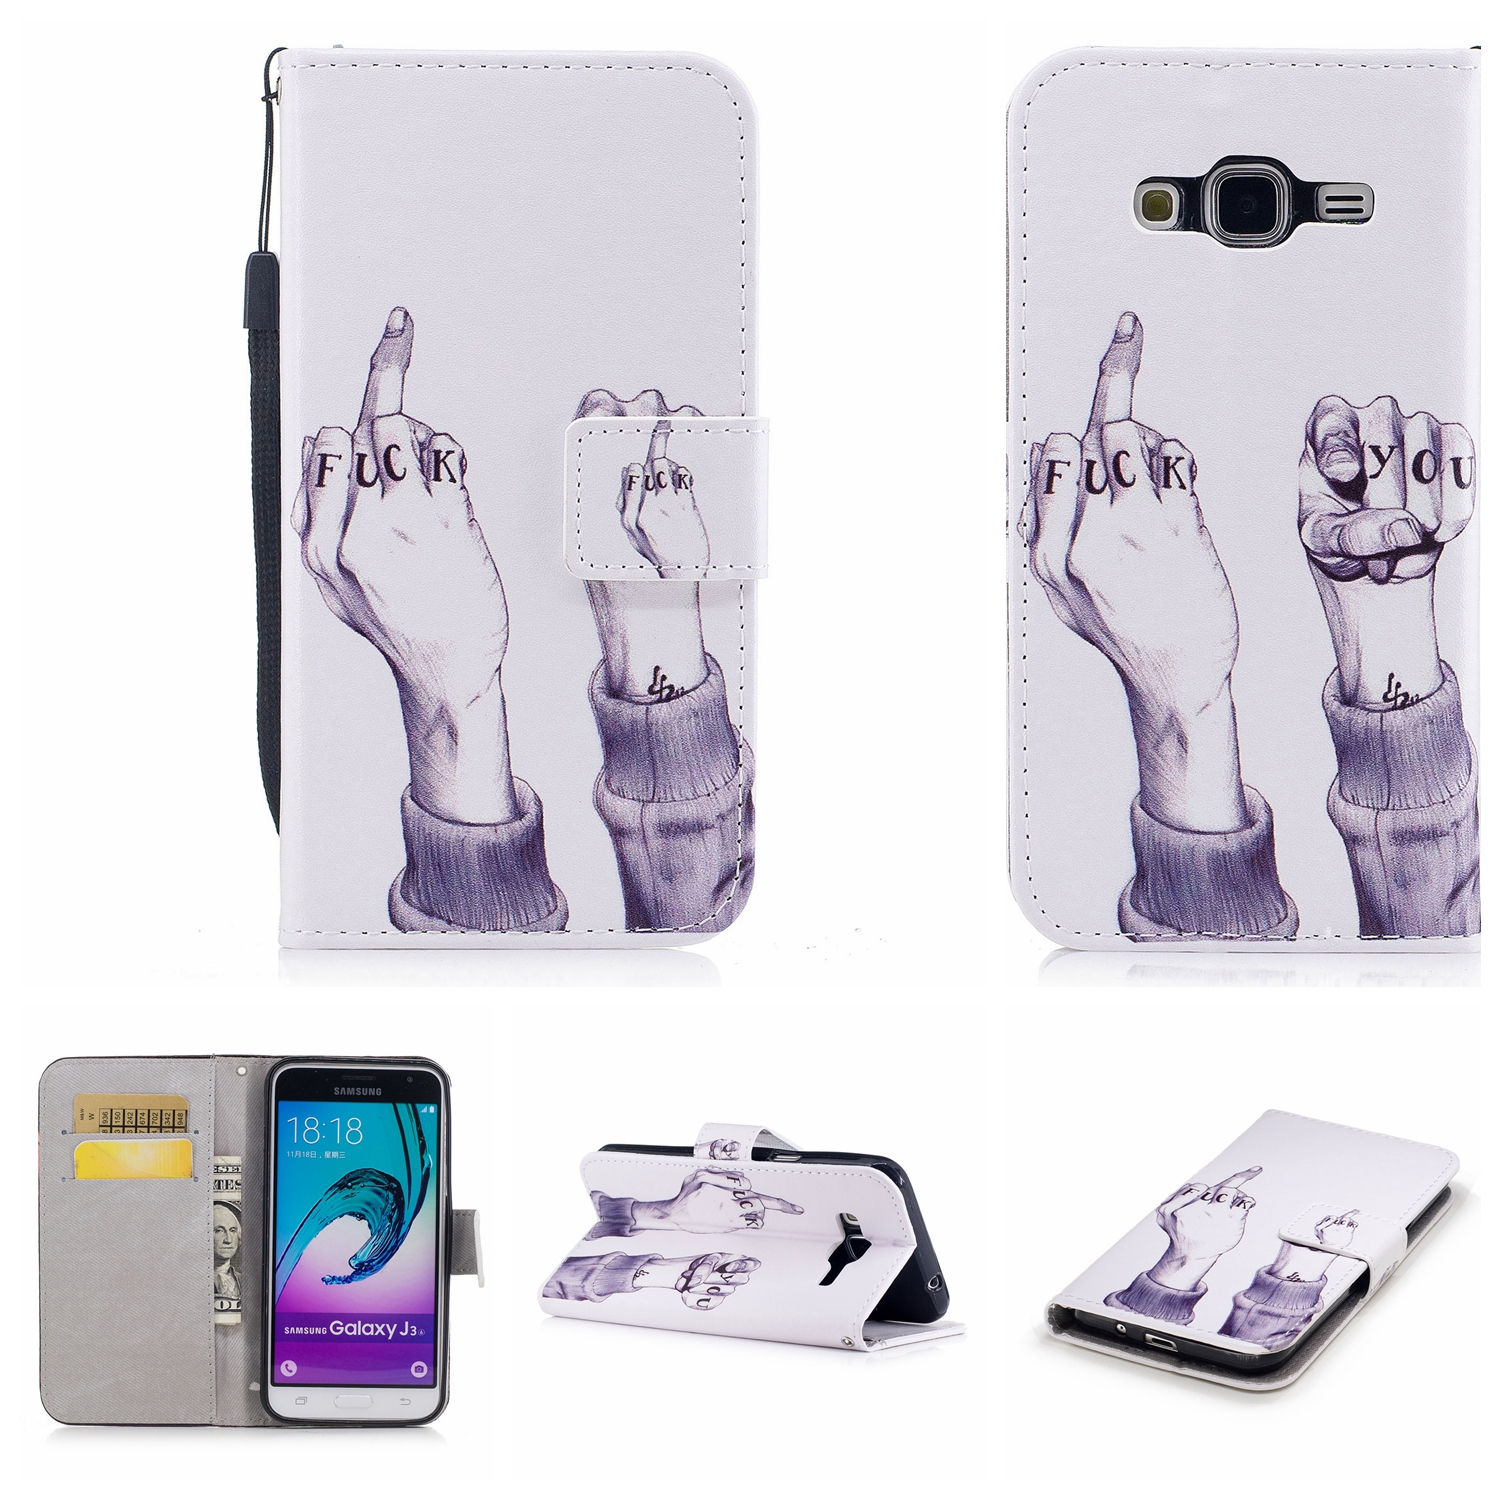 6j3 samsung galaxy phone case